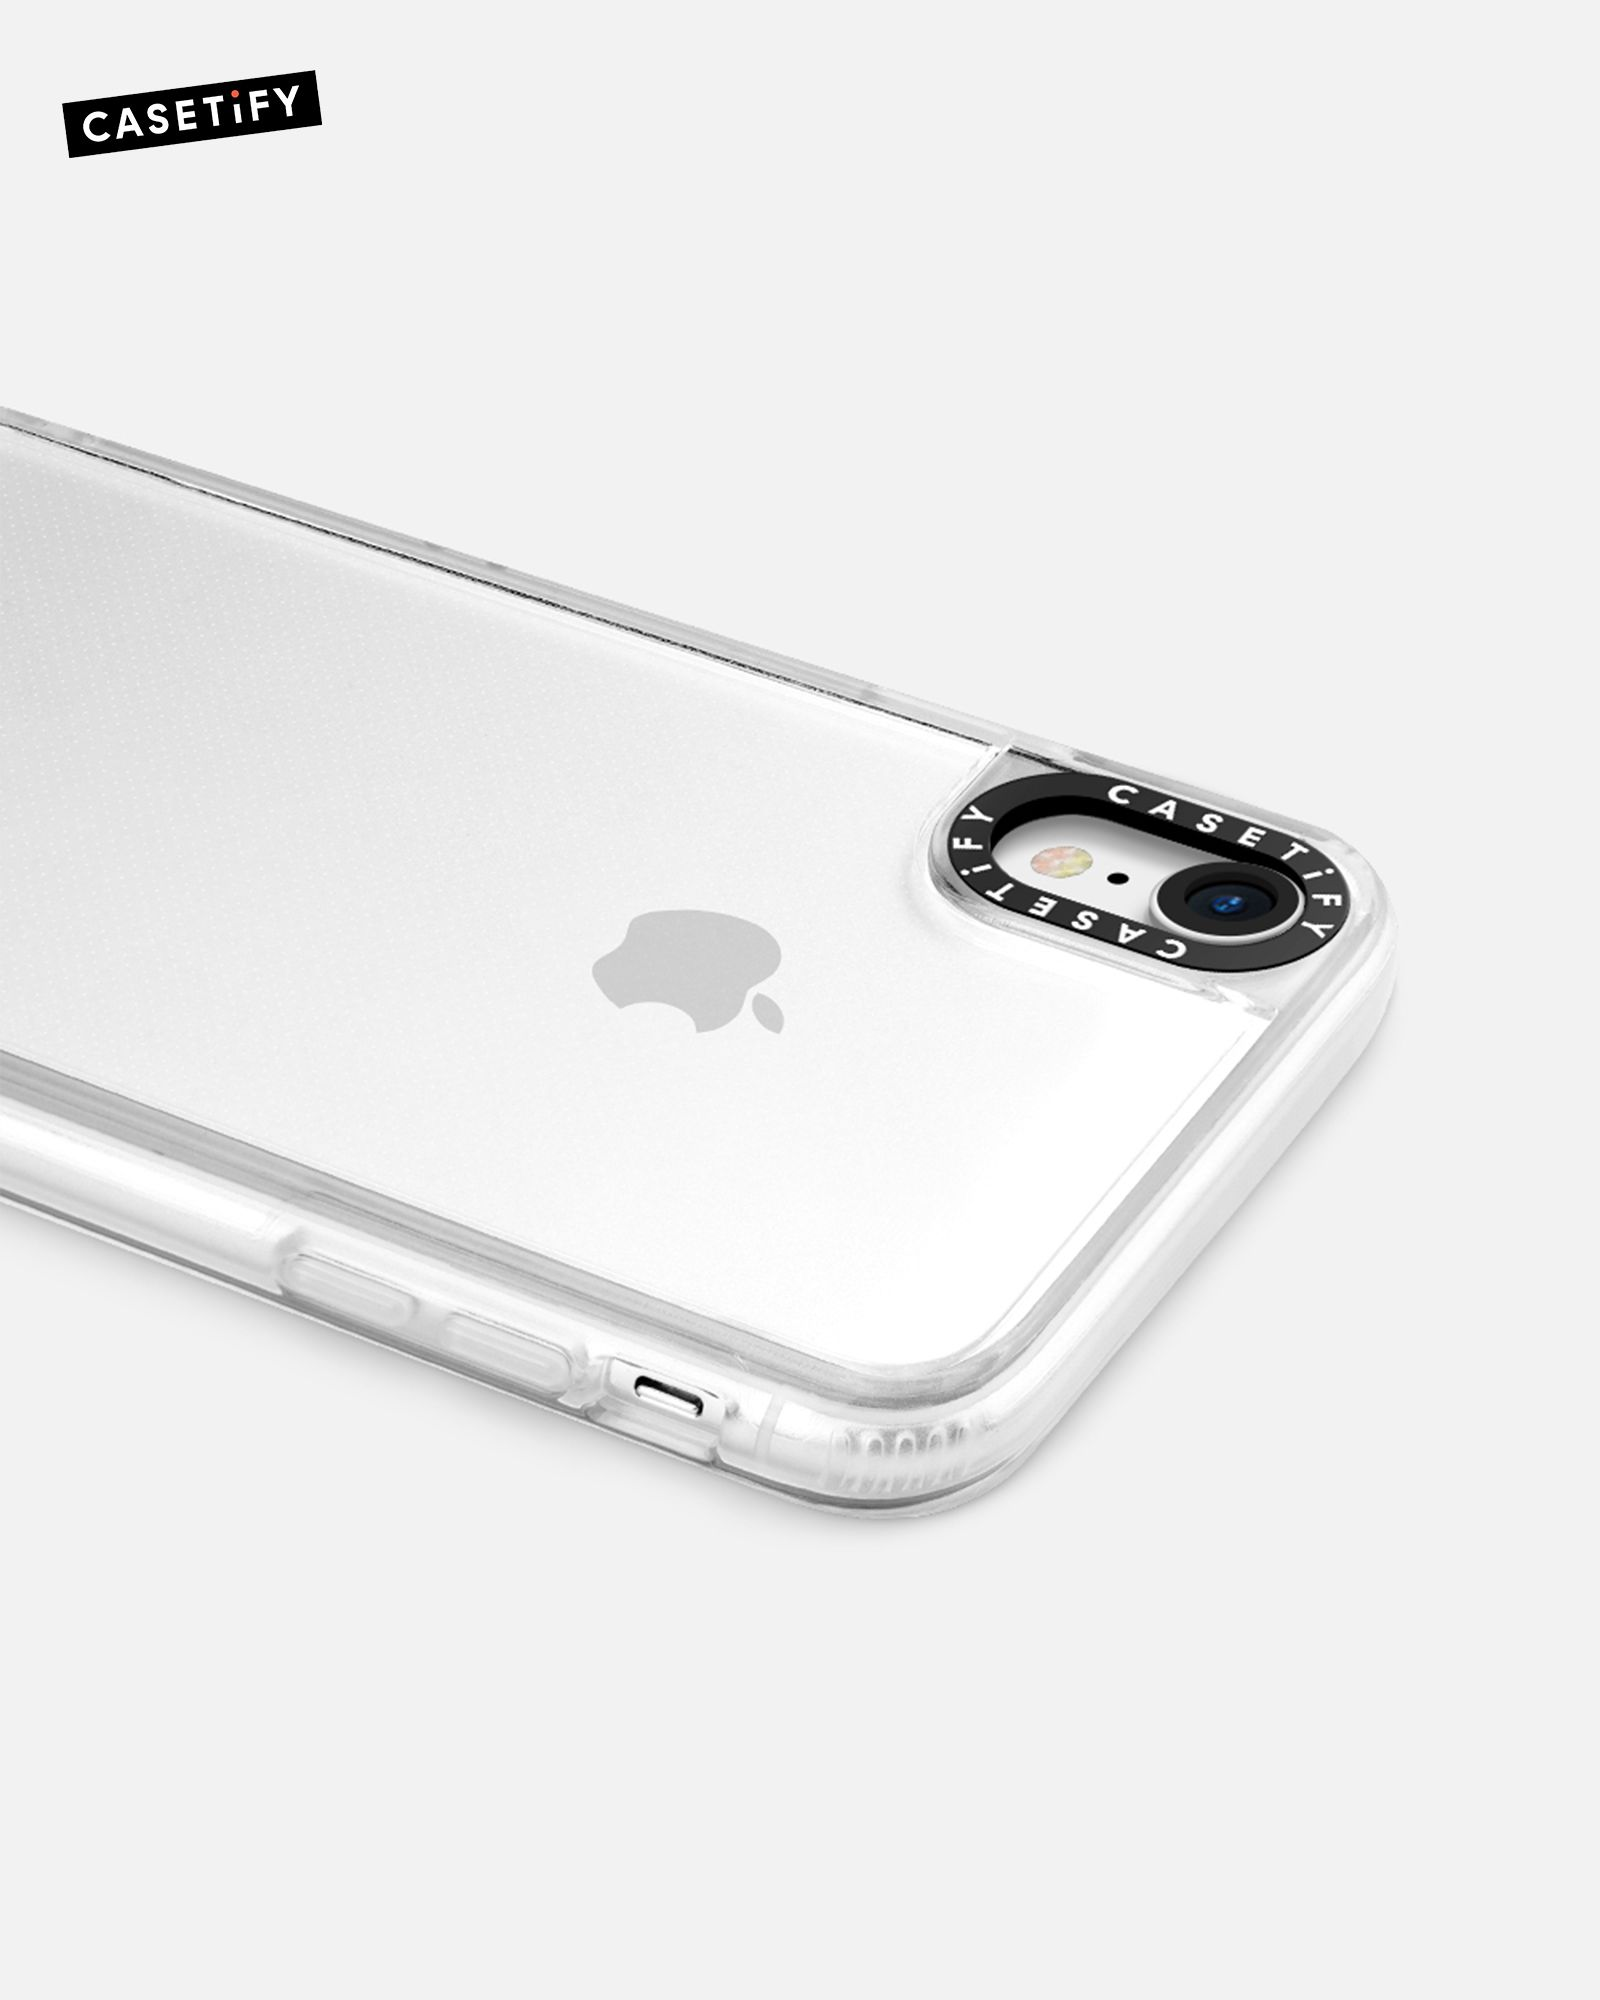 reputable site 38558 006d2 Casetify Clear iPhone XR Case – The transparent Grip Case is made ...